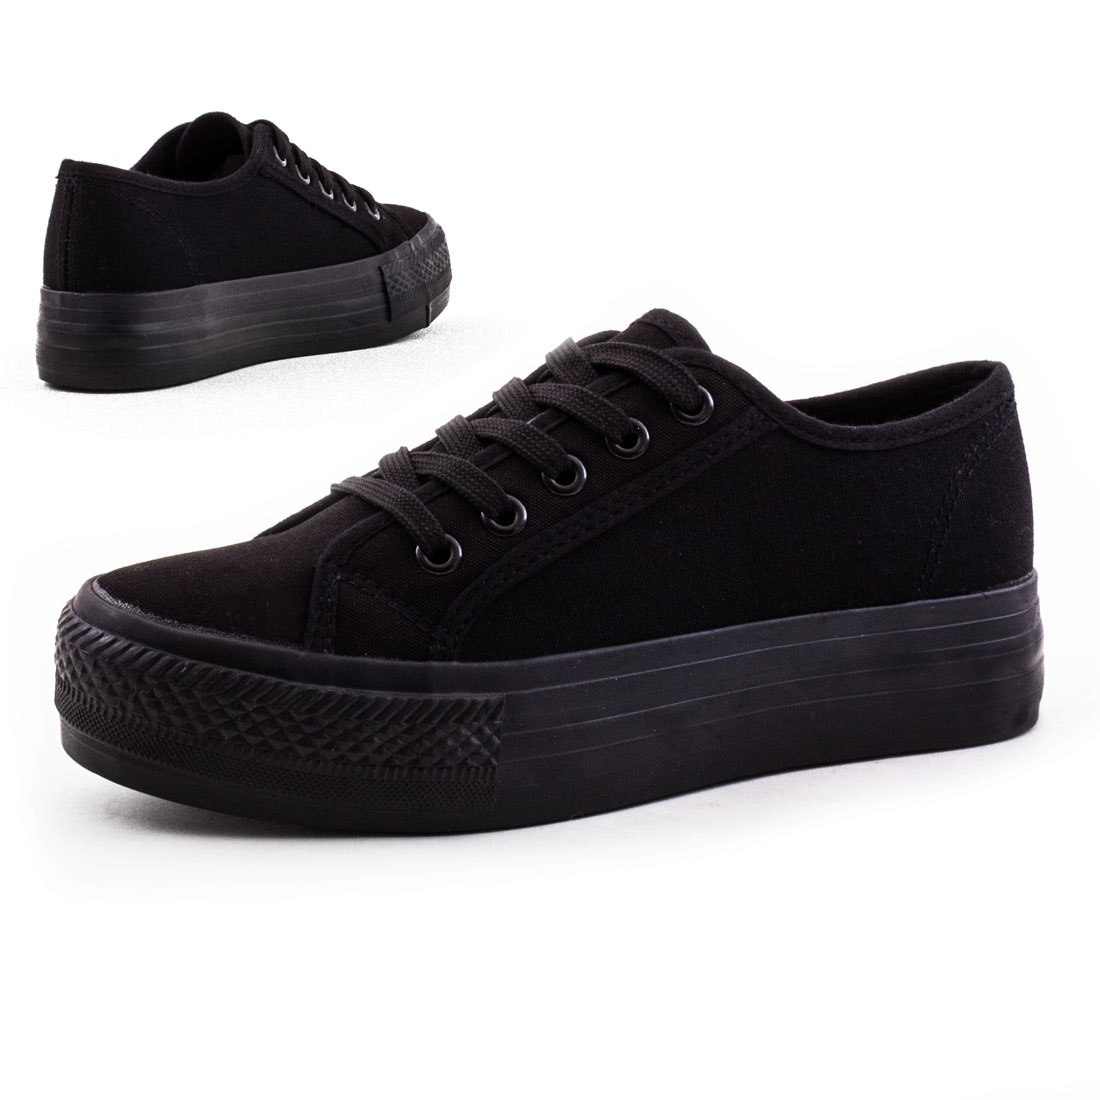 neu damen low top canvas sneaker mit dicker sohle schuhe gr 36 37 38 39 40 41 ebay. Black Bedroom Furniture Sets. Home Design Ideas